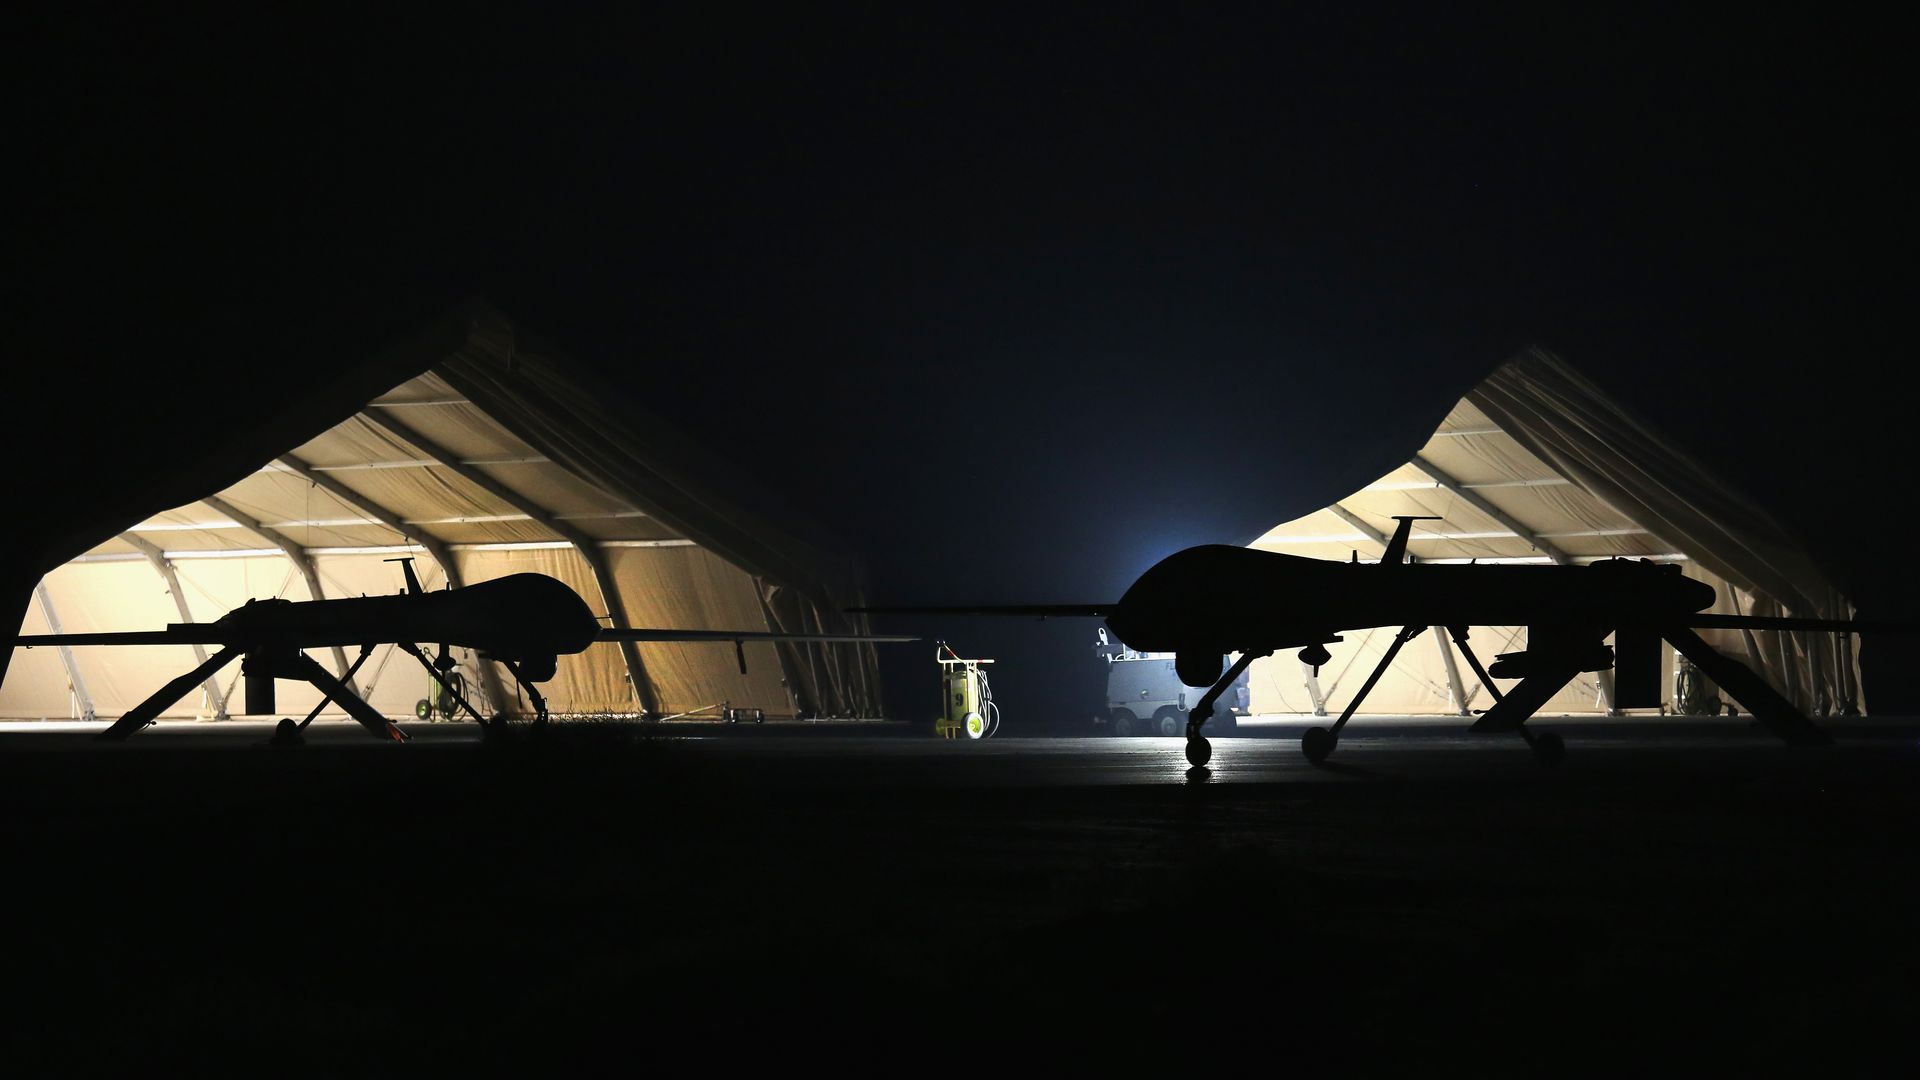 U.S. Air Force Predator drones at base at night